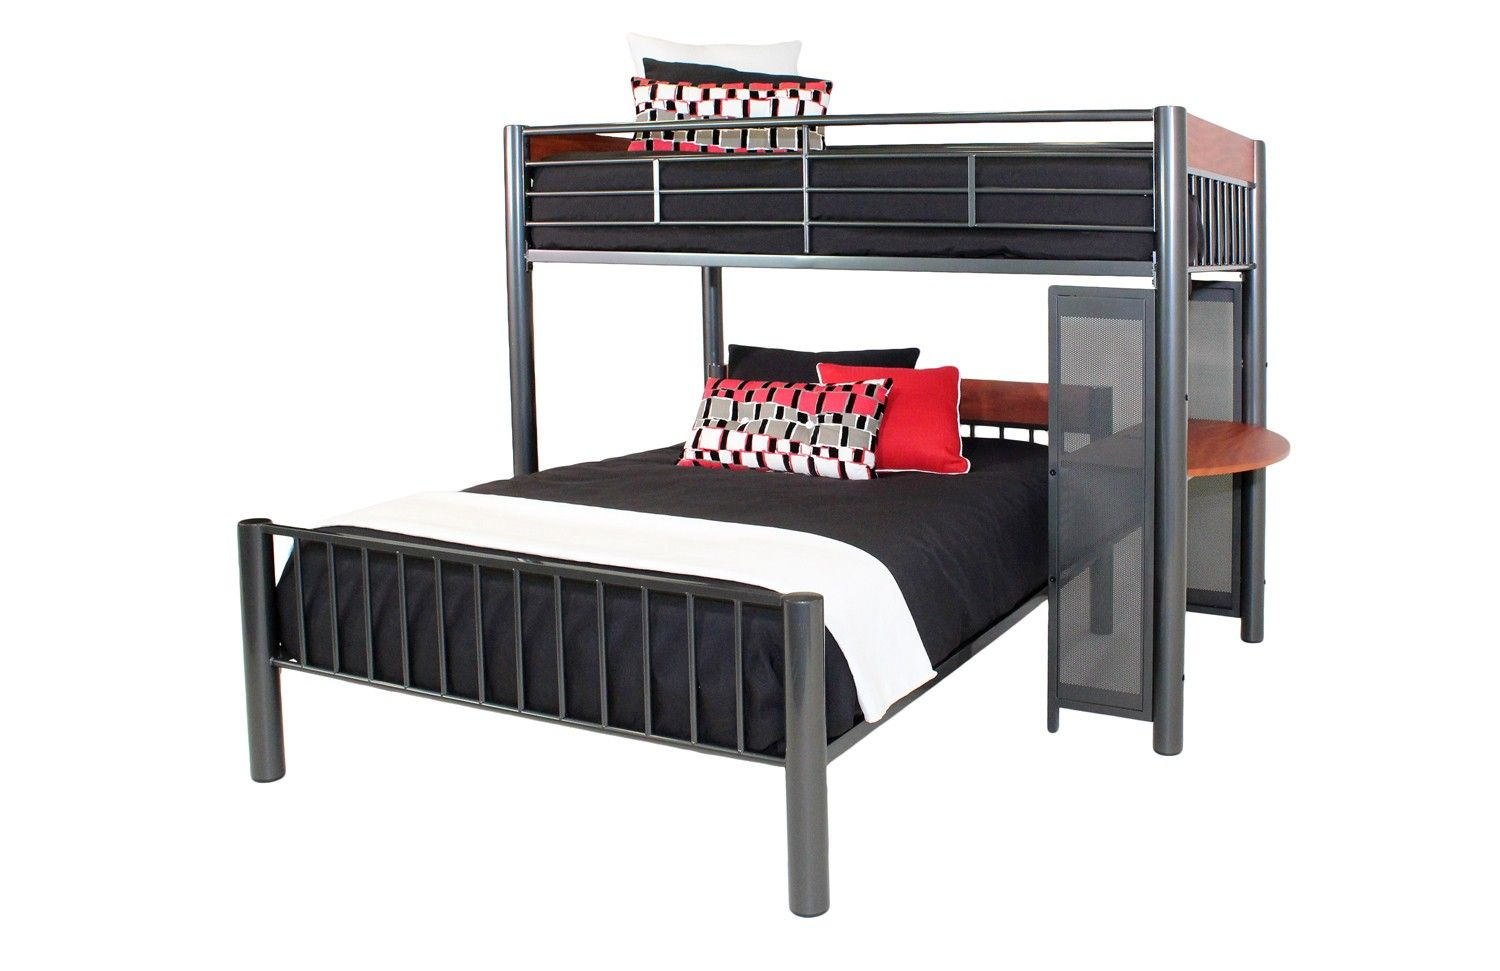 Tron Loft Bunk Bed Bunk Beds Kids Amp Teens Mor